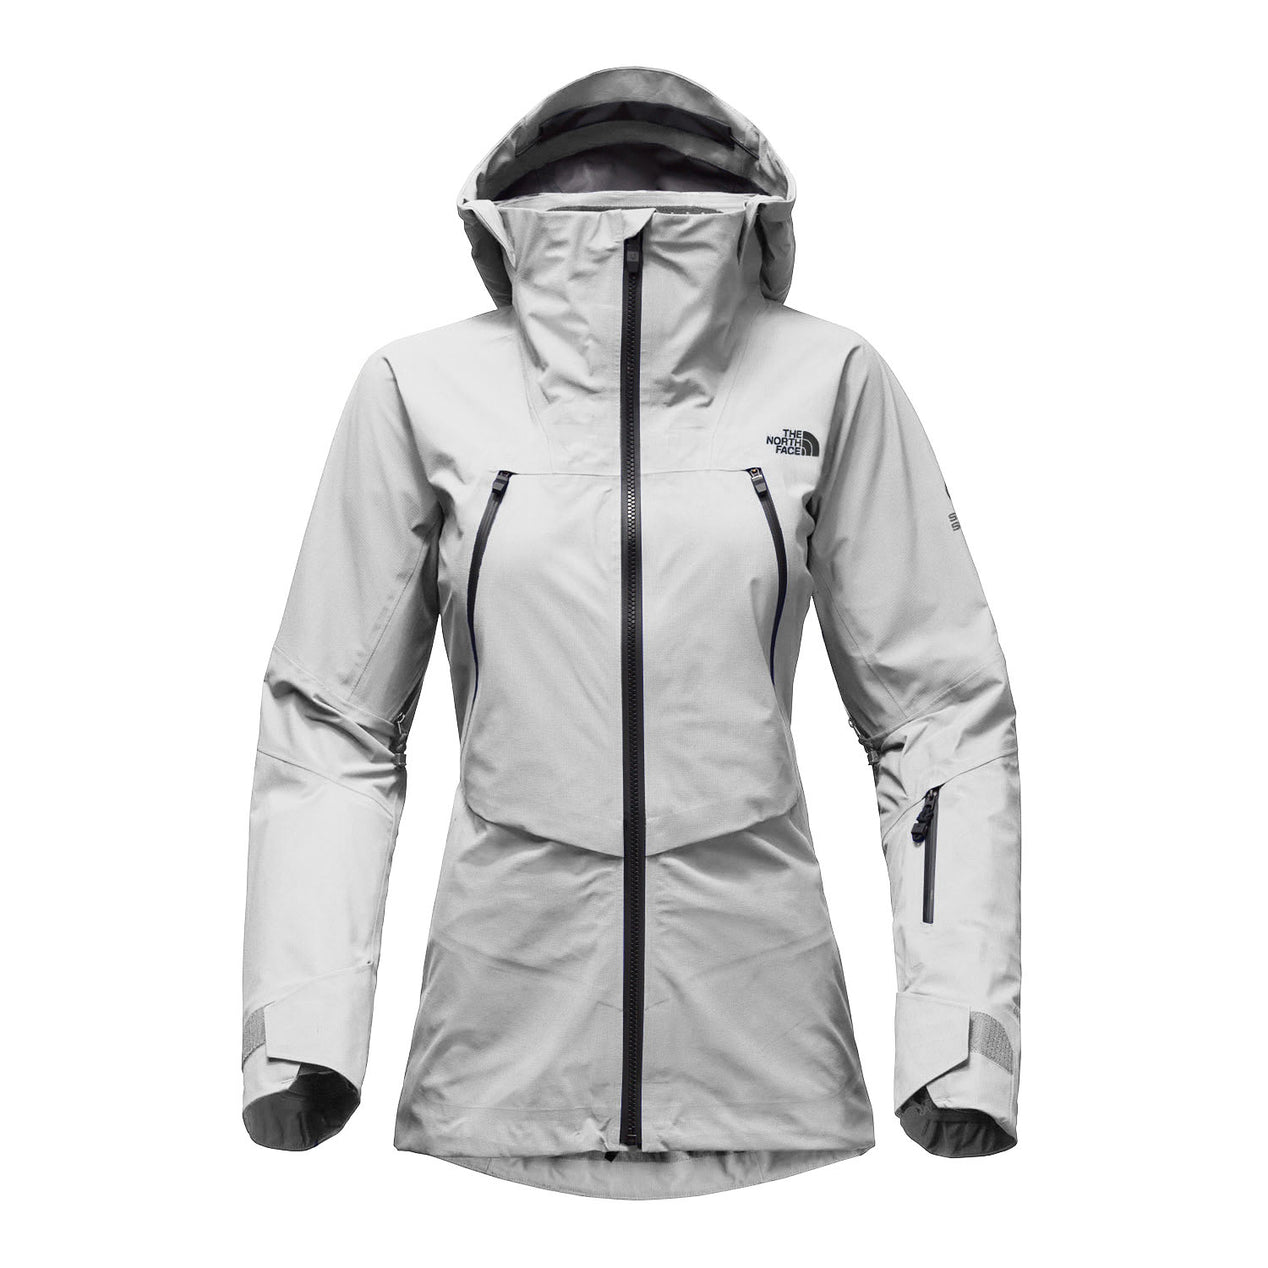 2f6290658d35 The North Face Women s Purist Triclimate® Jacket Past Season ...